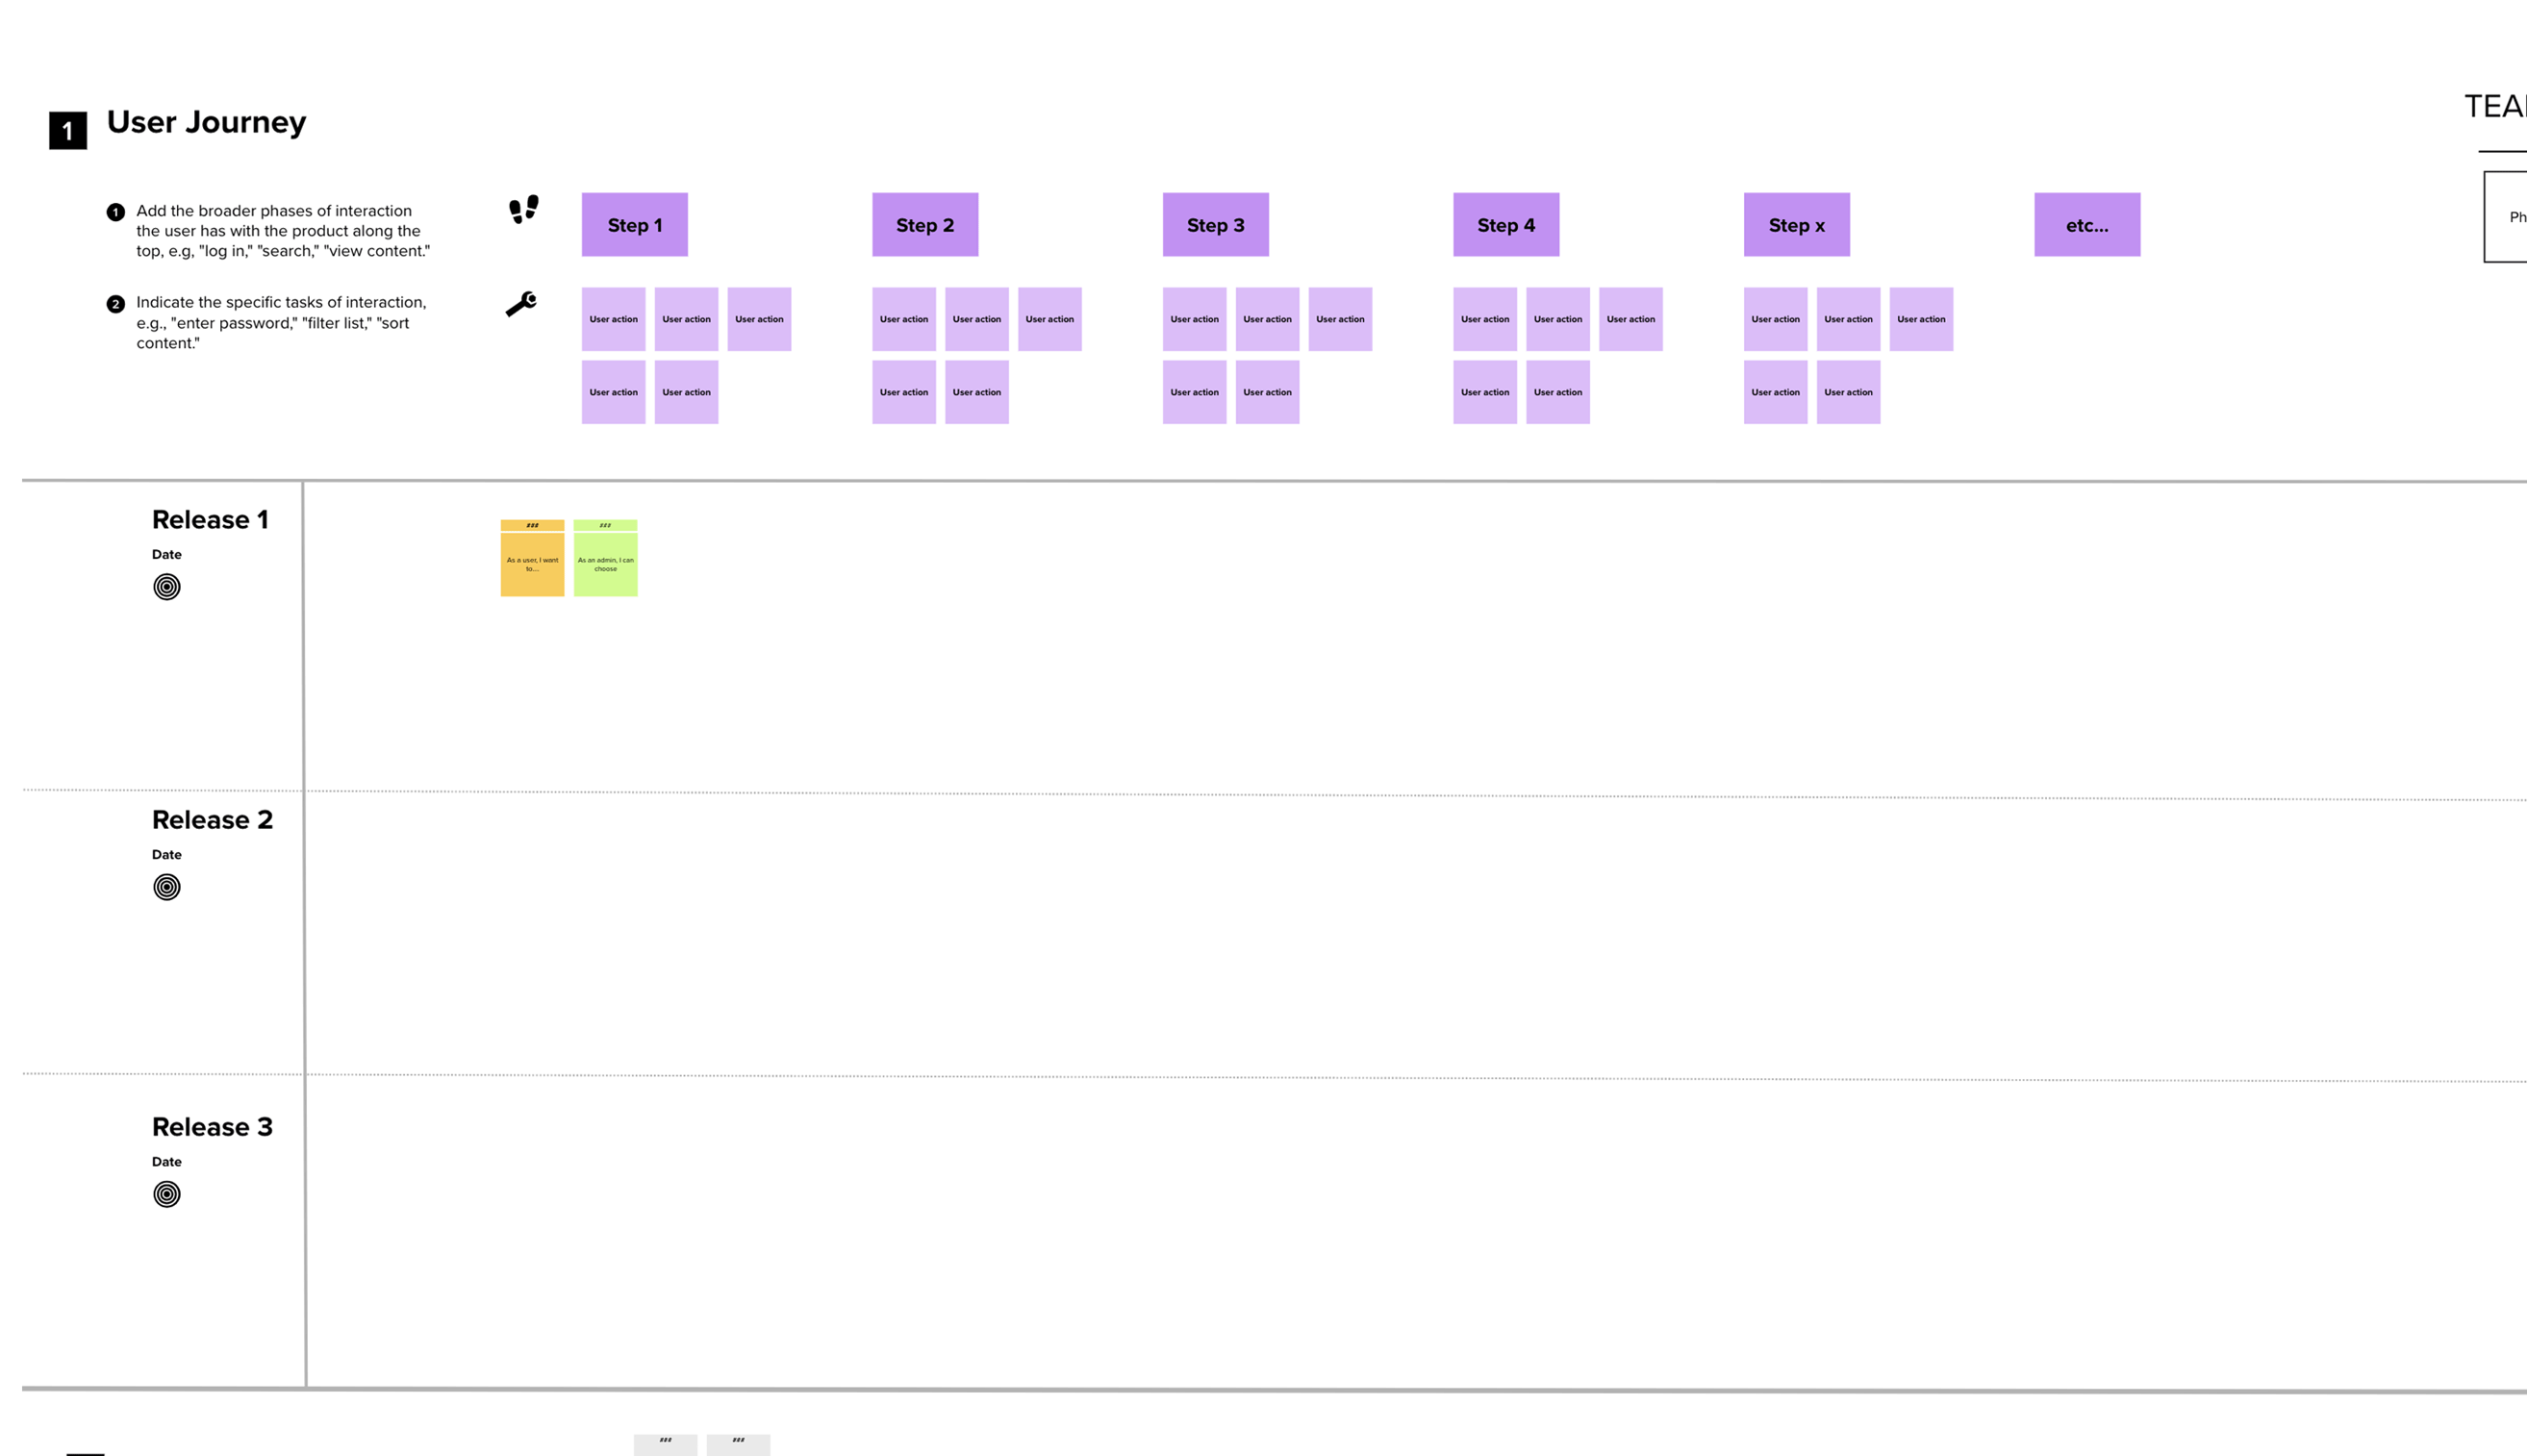 A user story map